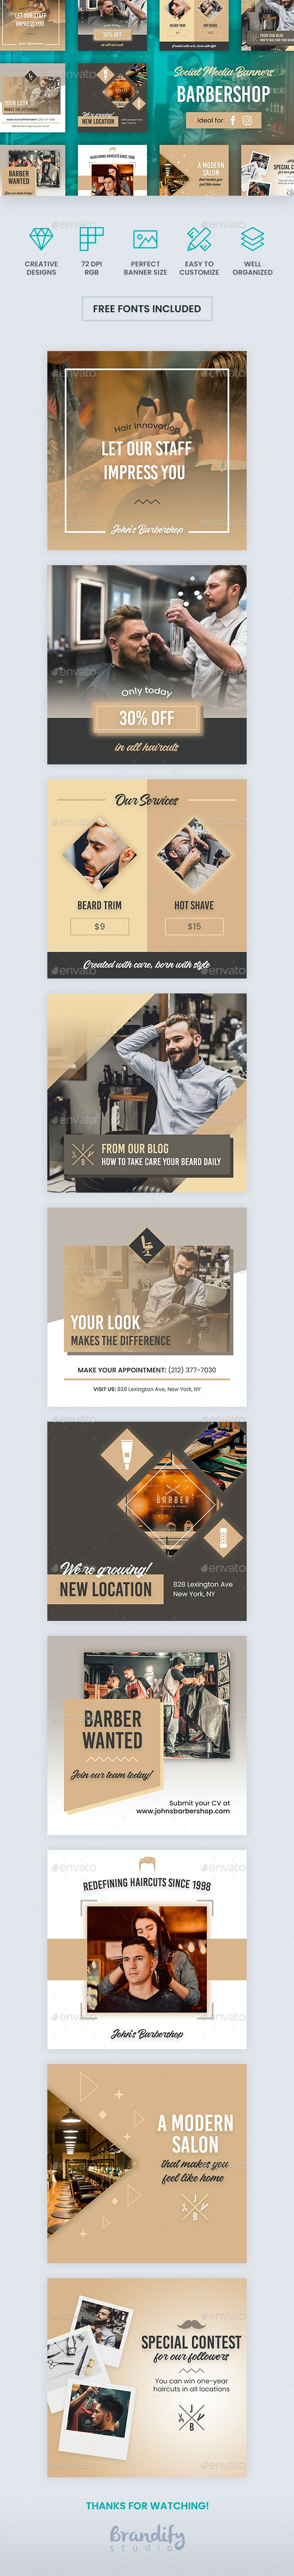 Barbershop Banners - Social Media Web Elements